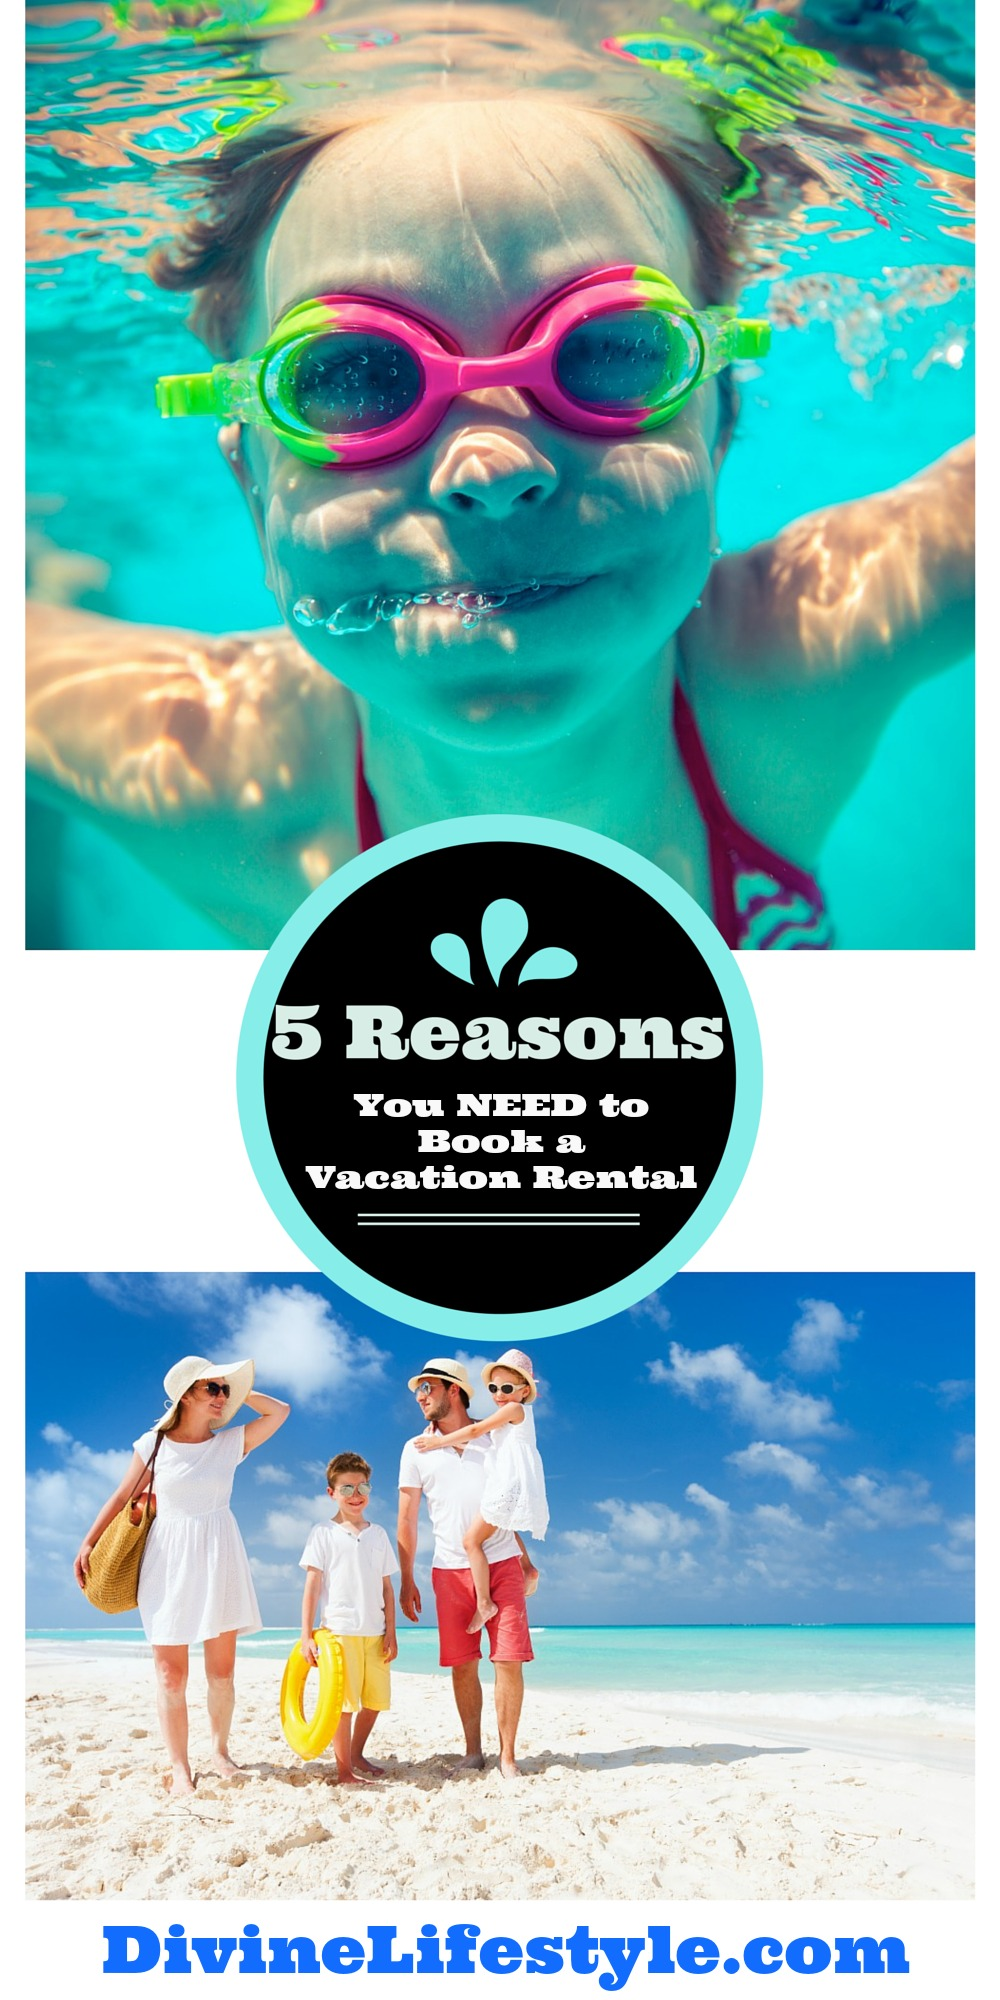 5 Reasons You Need to Book a Vacation Rental